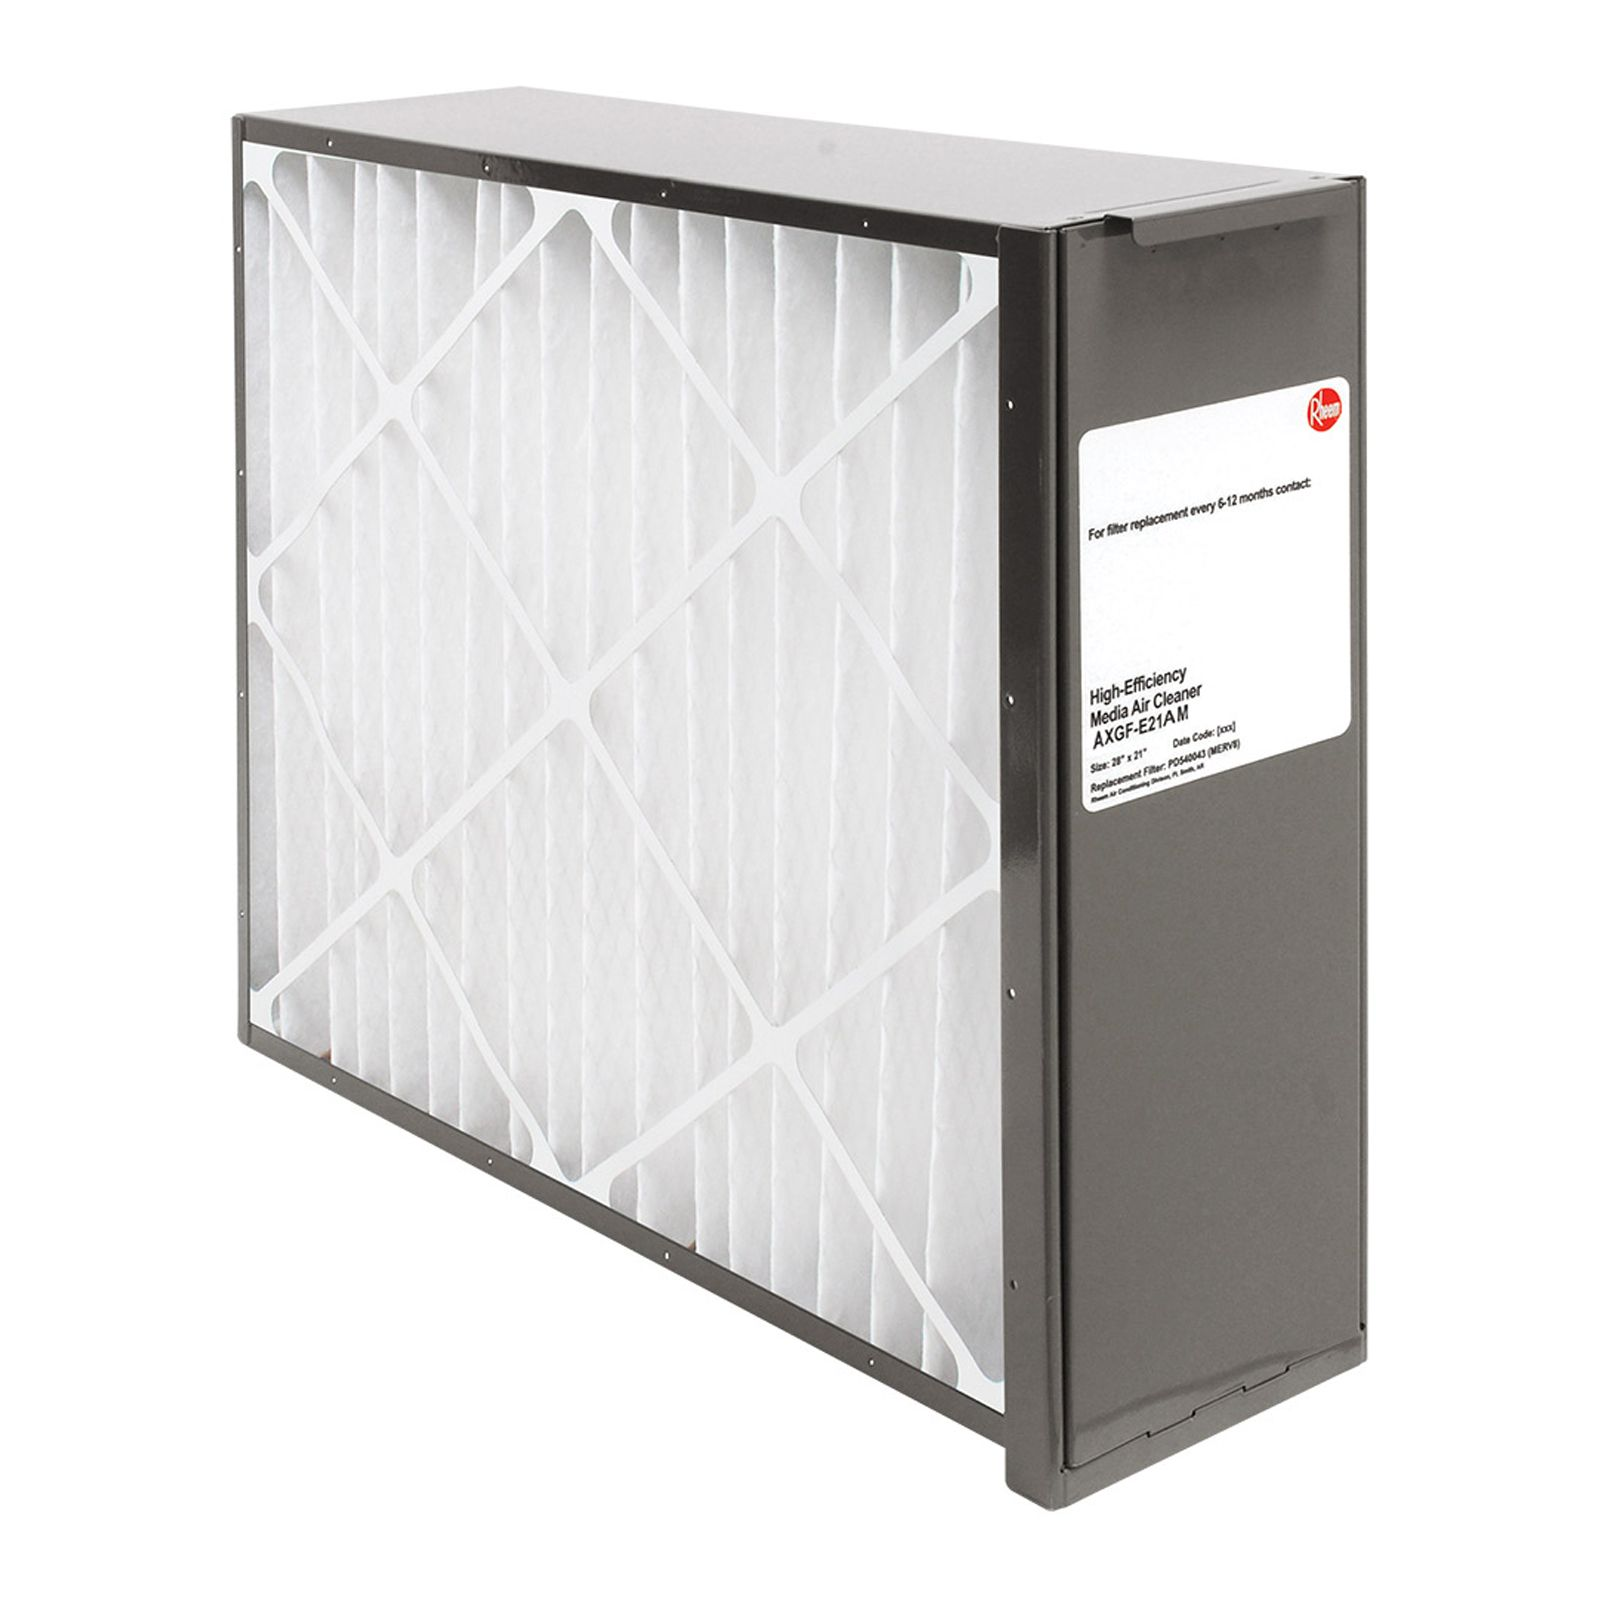 Rheem AXGF-E21AM -  PROTECH Exact Fit Media Air Cleaners for Gas Furnaces - Includes Merv 8 Filter Media - 21 1/8""